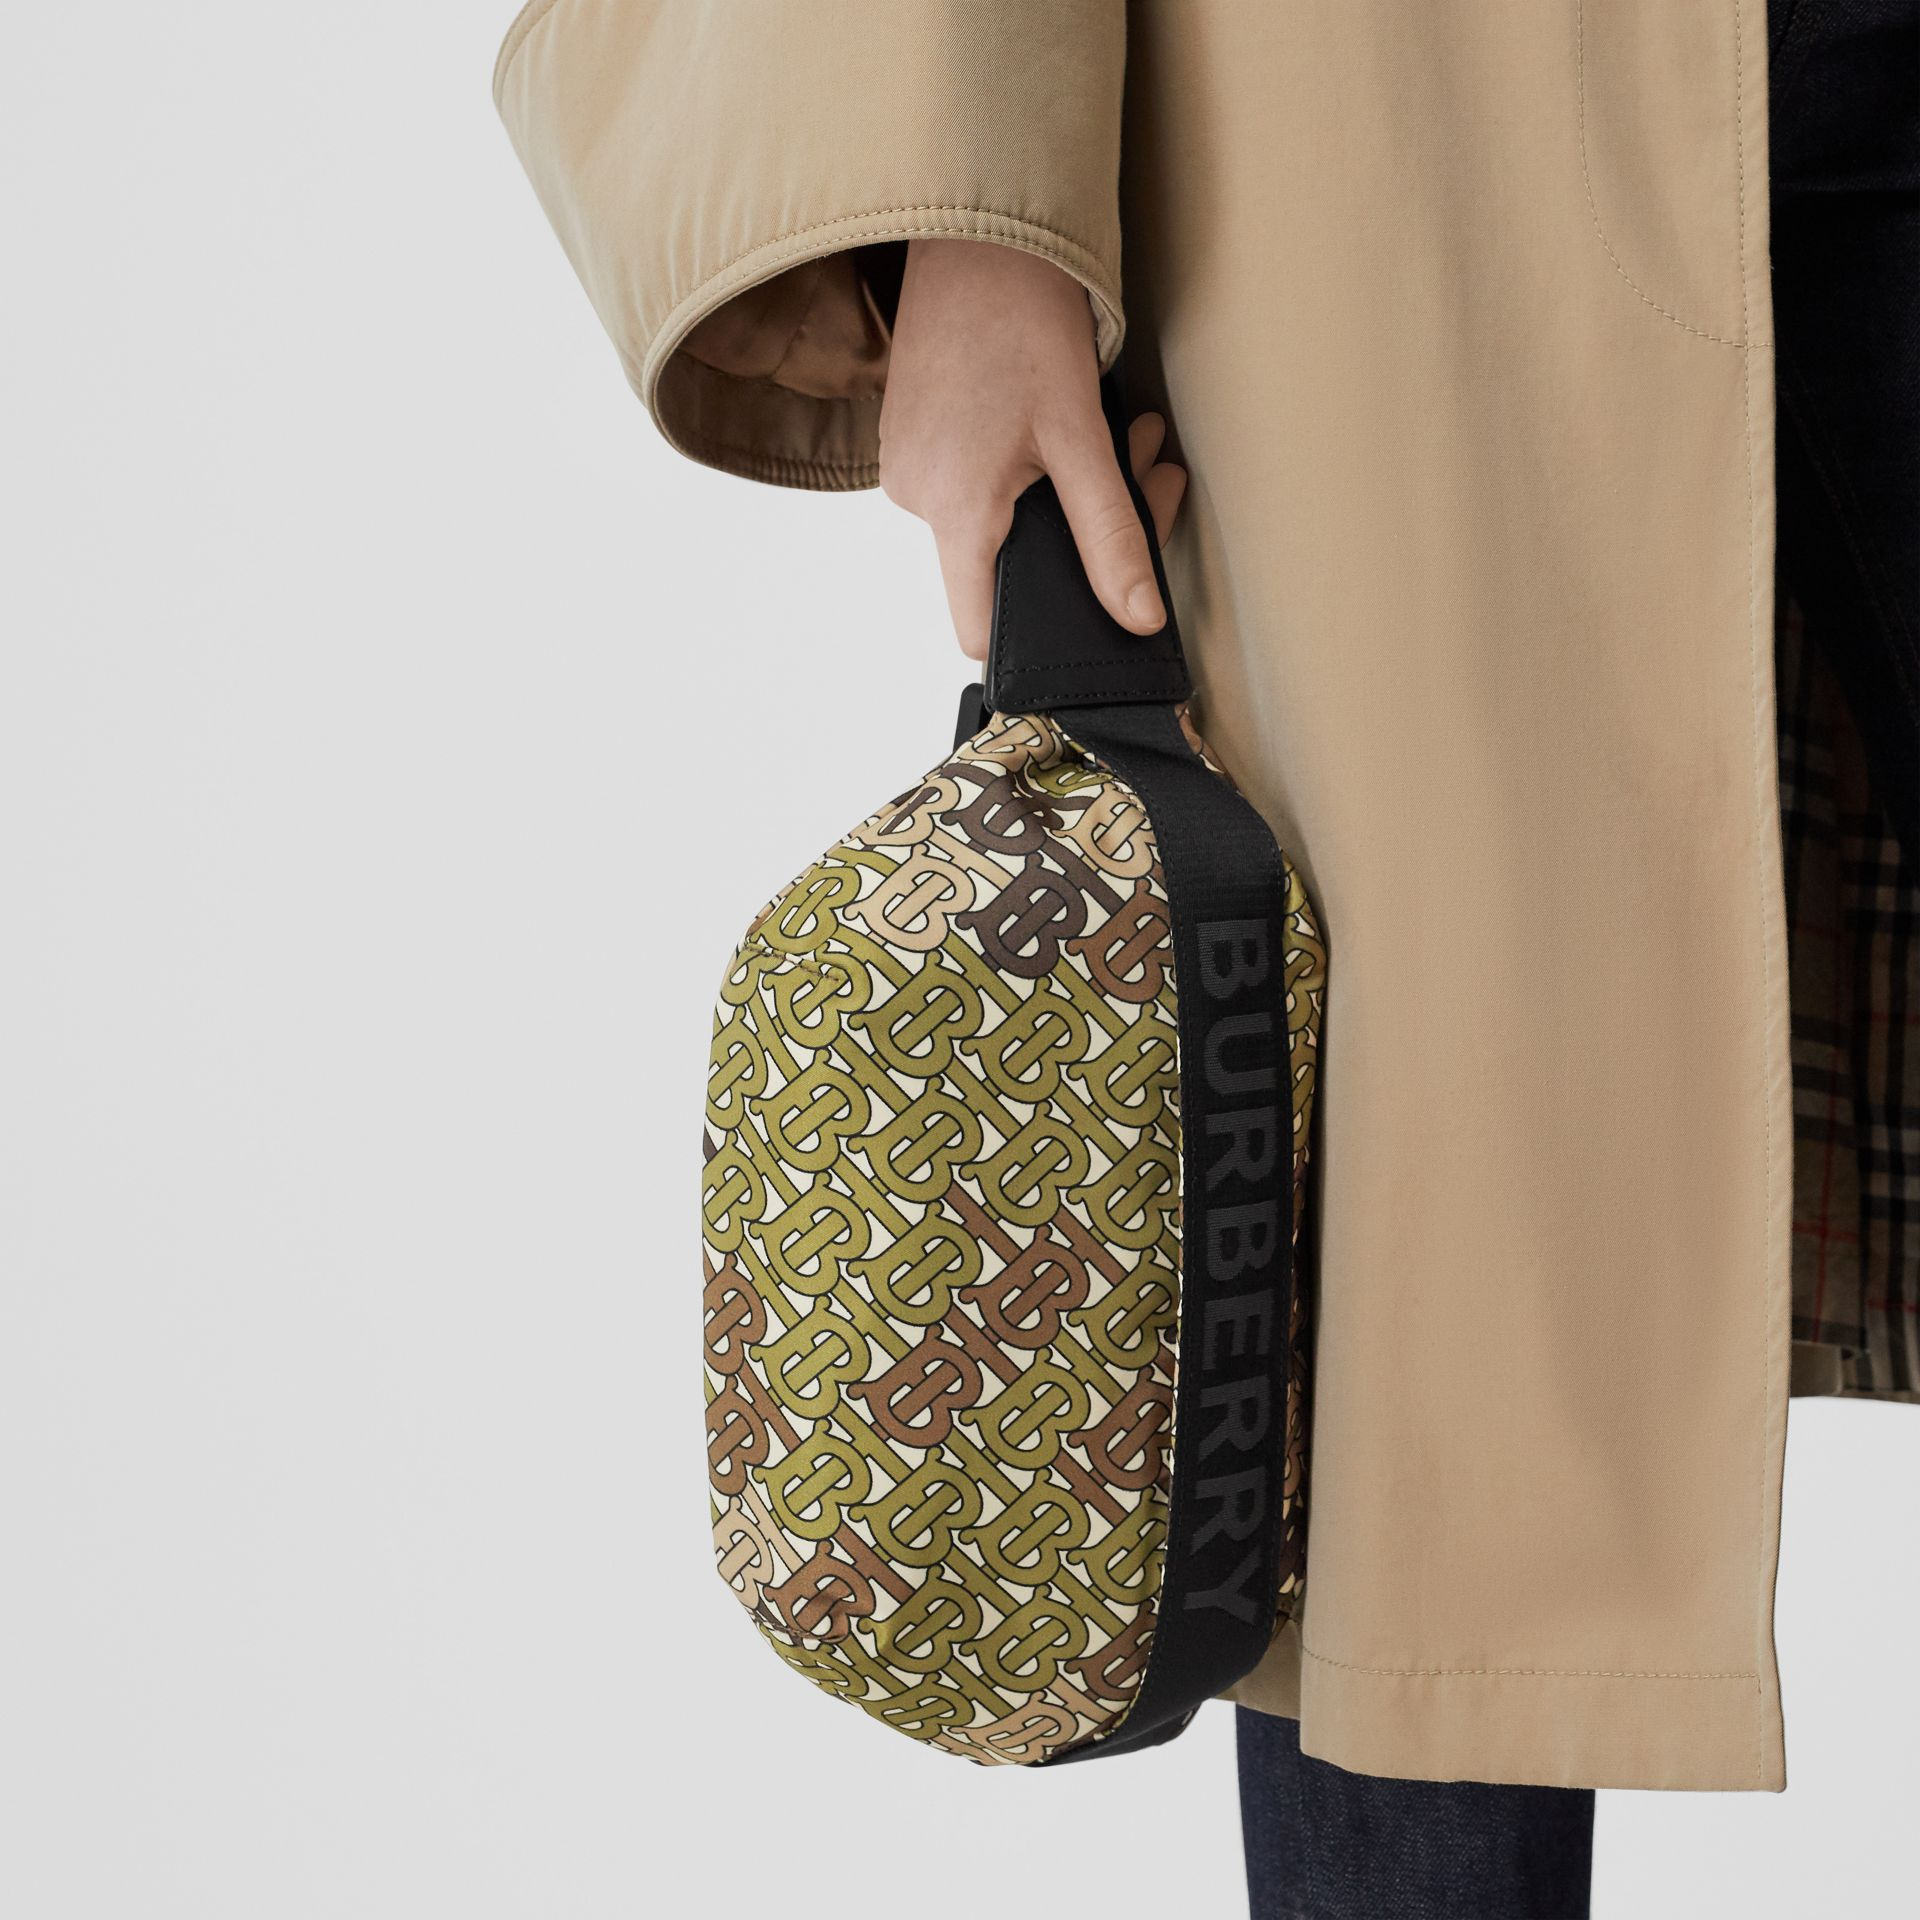 Medium Monogram Print Bum Bag in Khaki Green | Burberry Canada - gallery image 2